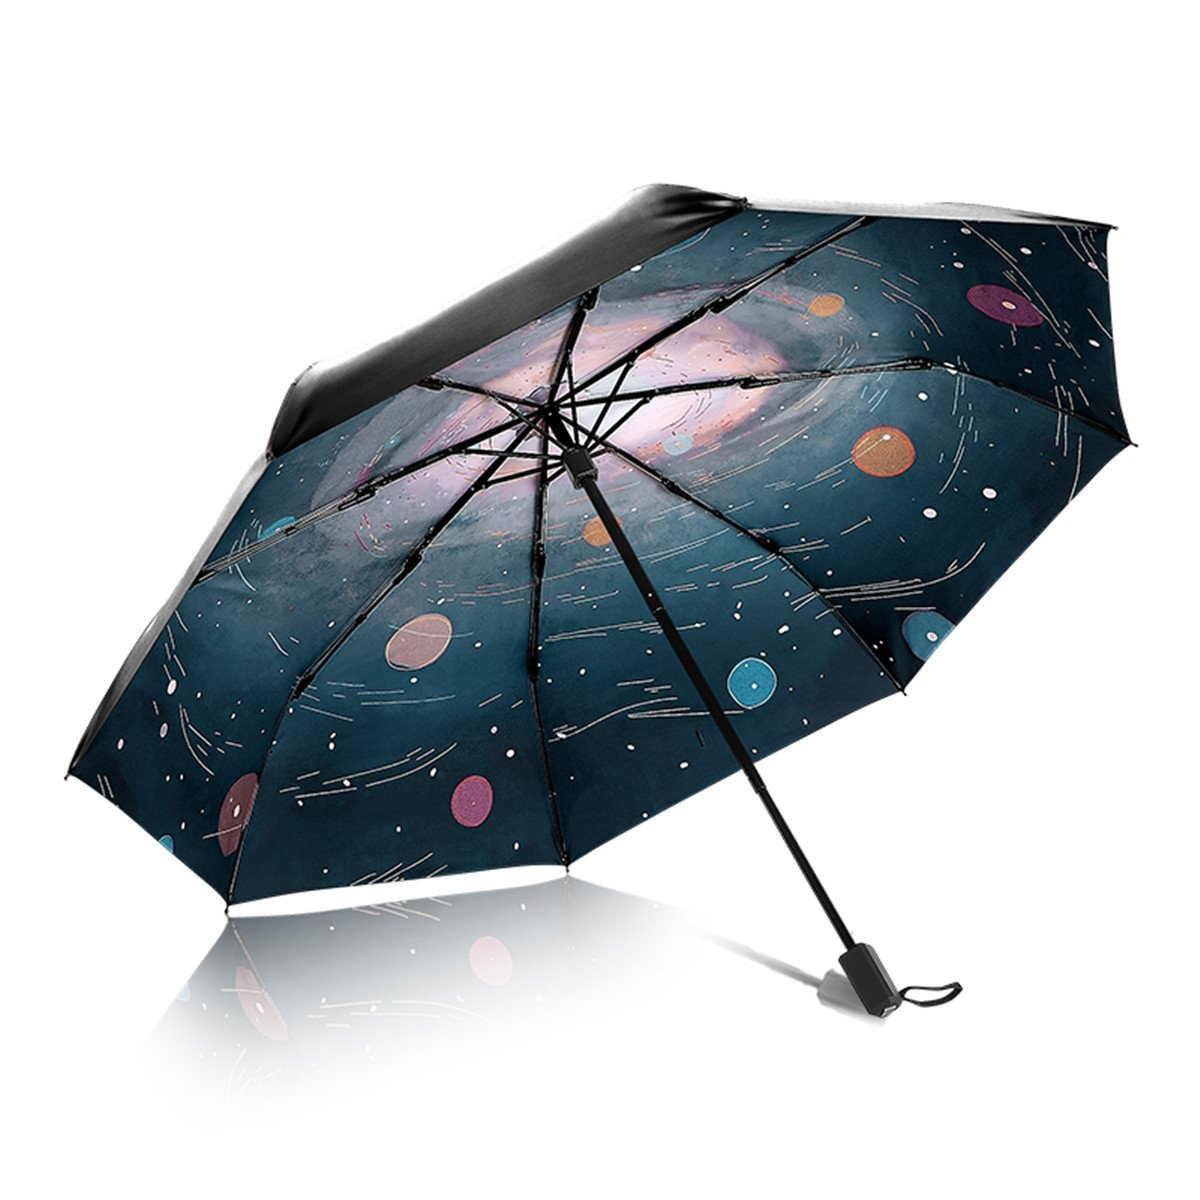 Artistic Umbrella Light-weighted Folding Umbrella with Anti-UV and Windproof Funtions Suitable for Both Sunny and Raining Days- Available In 5 Patterns (Universe)